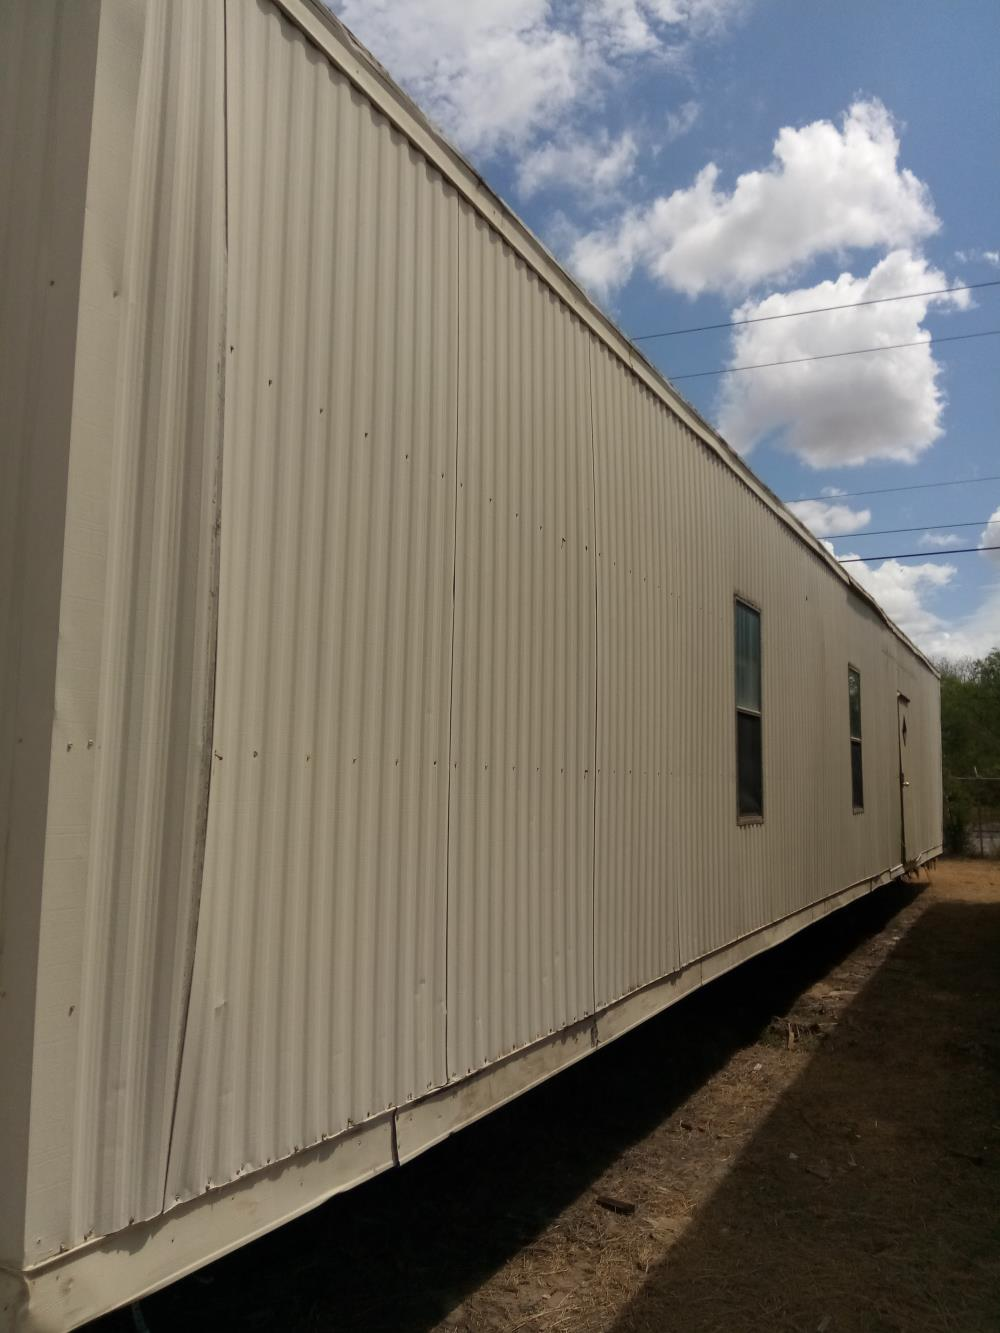 64'x28' Section Modular for sale in San Antonio, TX - CPX-98276 - 1